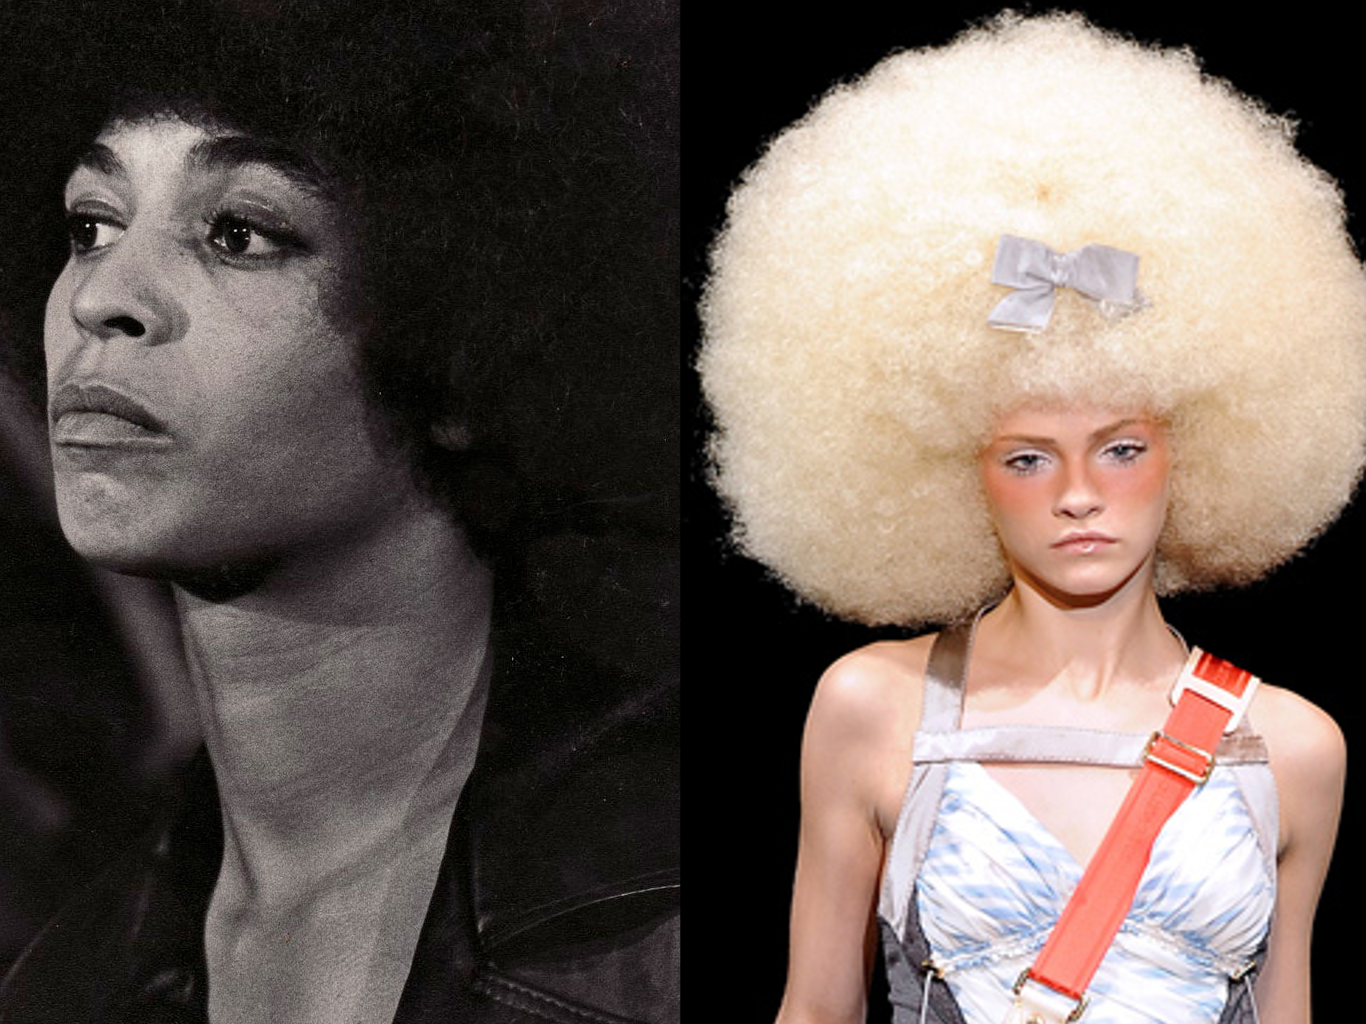 Angela Davis & Louis Vuitton model